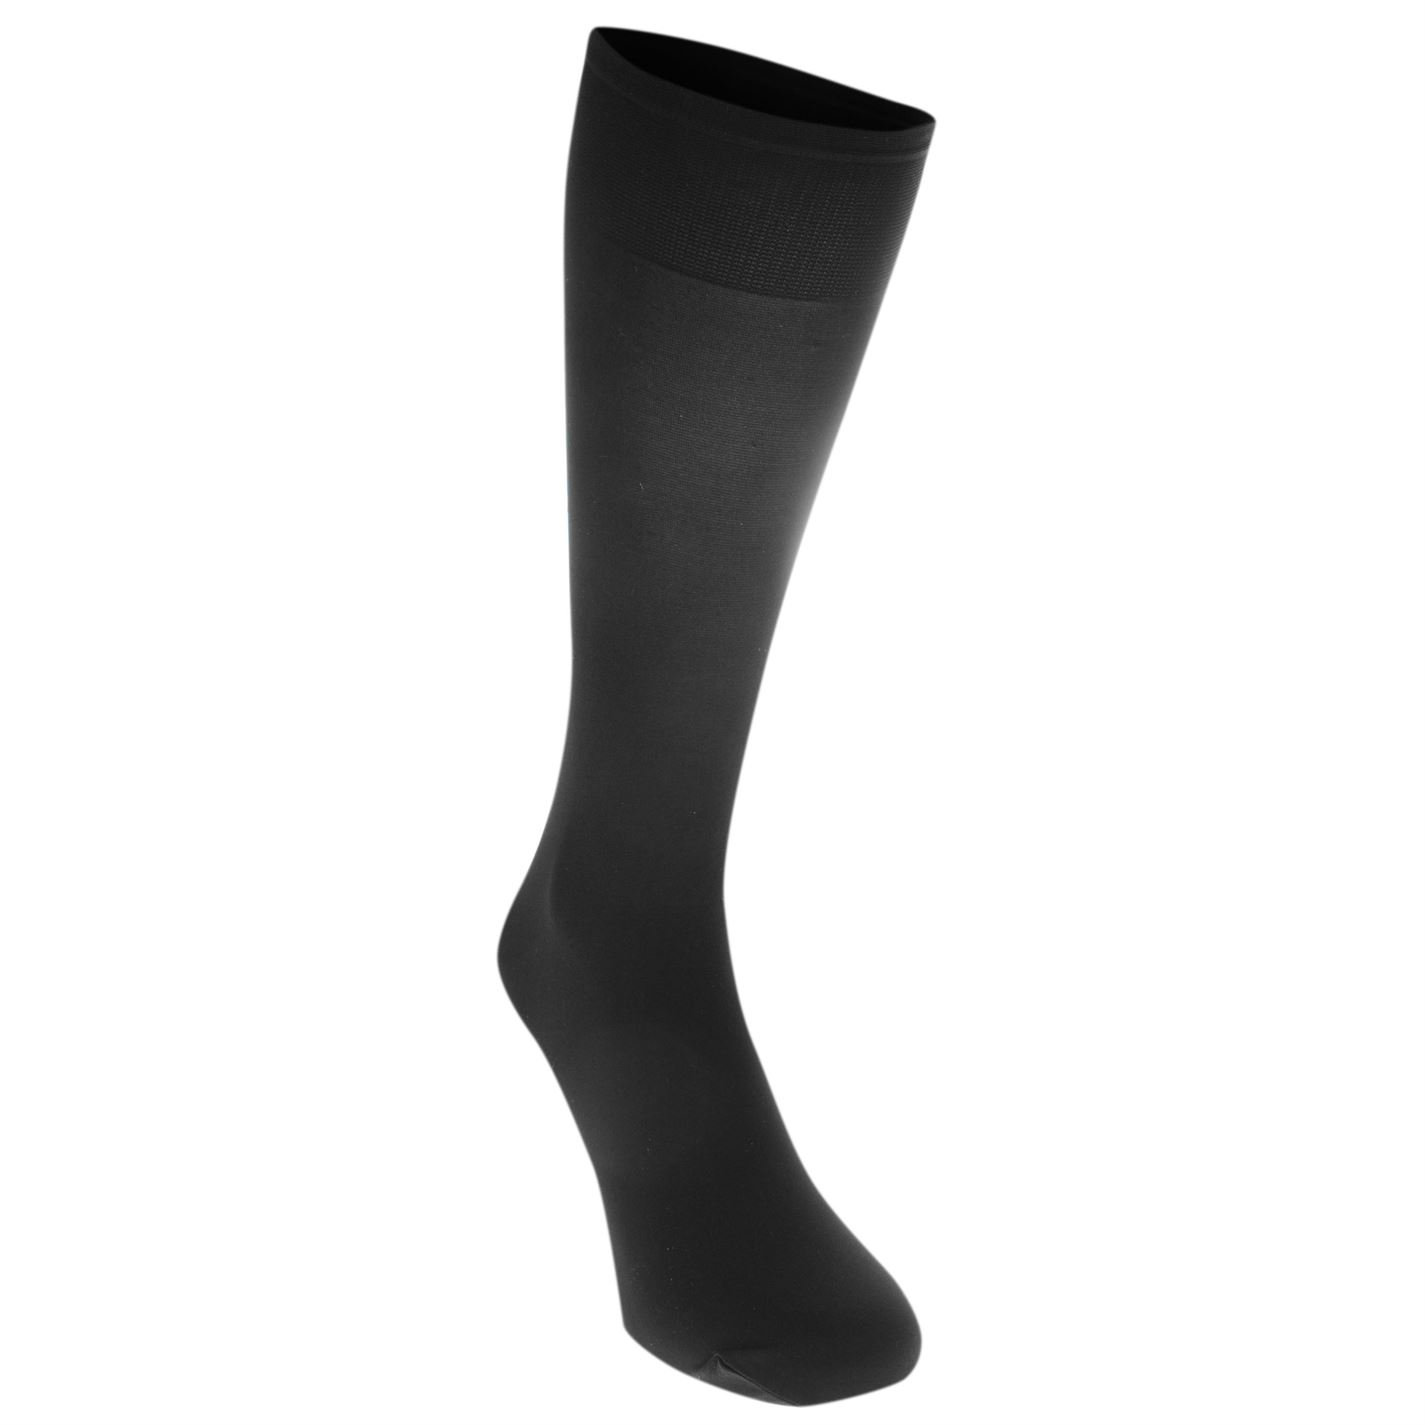 6105584c4 Rock and Rags Womens Tights Opaque 40 denier Knee Highs Underwear Stretch  High Black One Size  Amazon.co.uk  Shoes   Bags